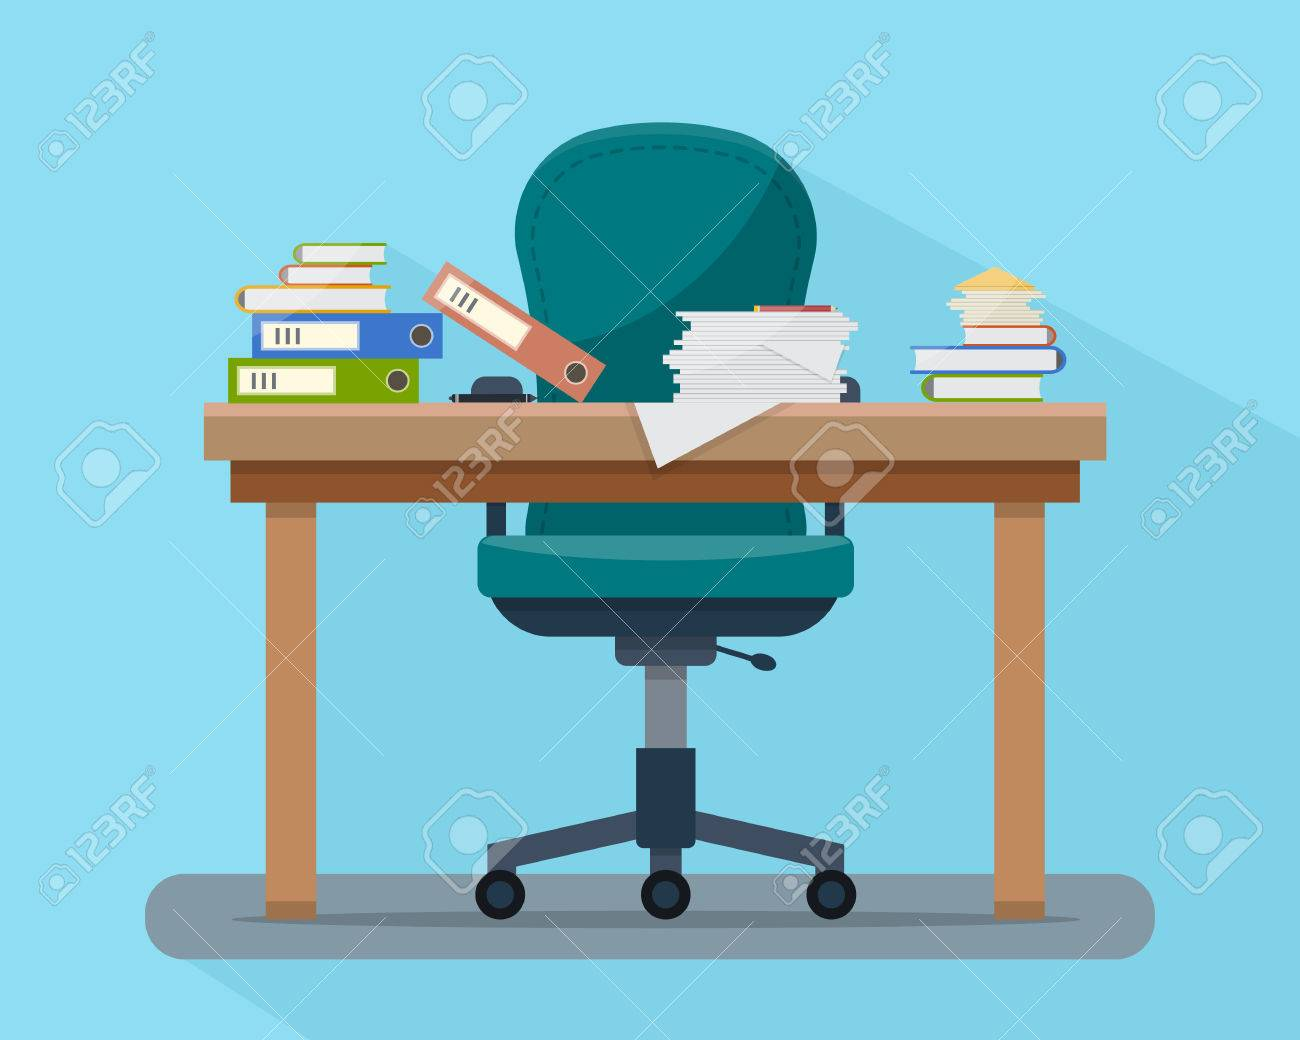 Busy cluttered office table. Hard work. Office interior with books, folders, papers and letters on table. Flat style vector illustration. - 52617223